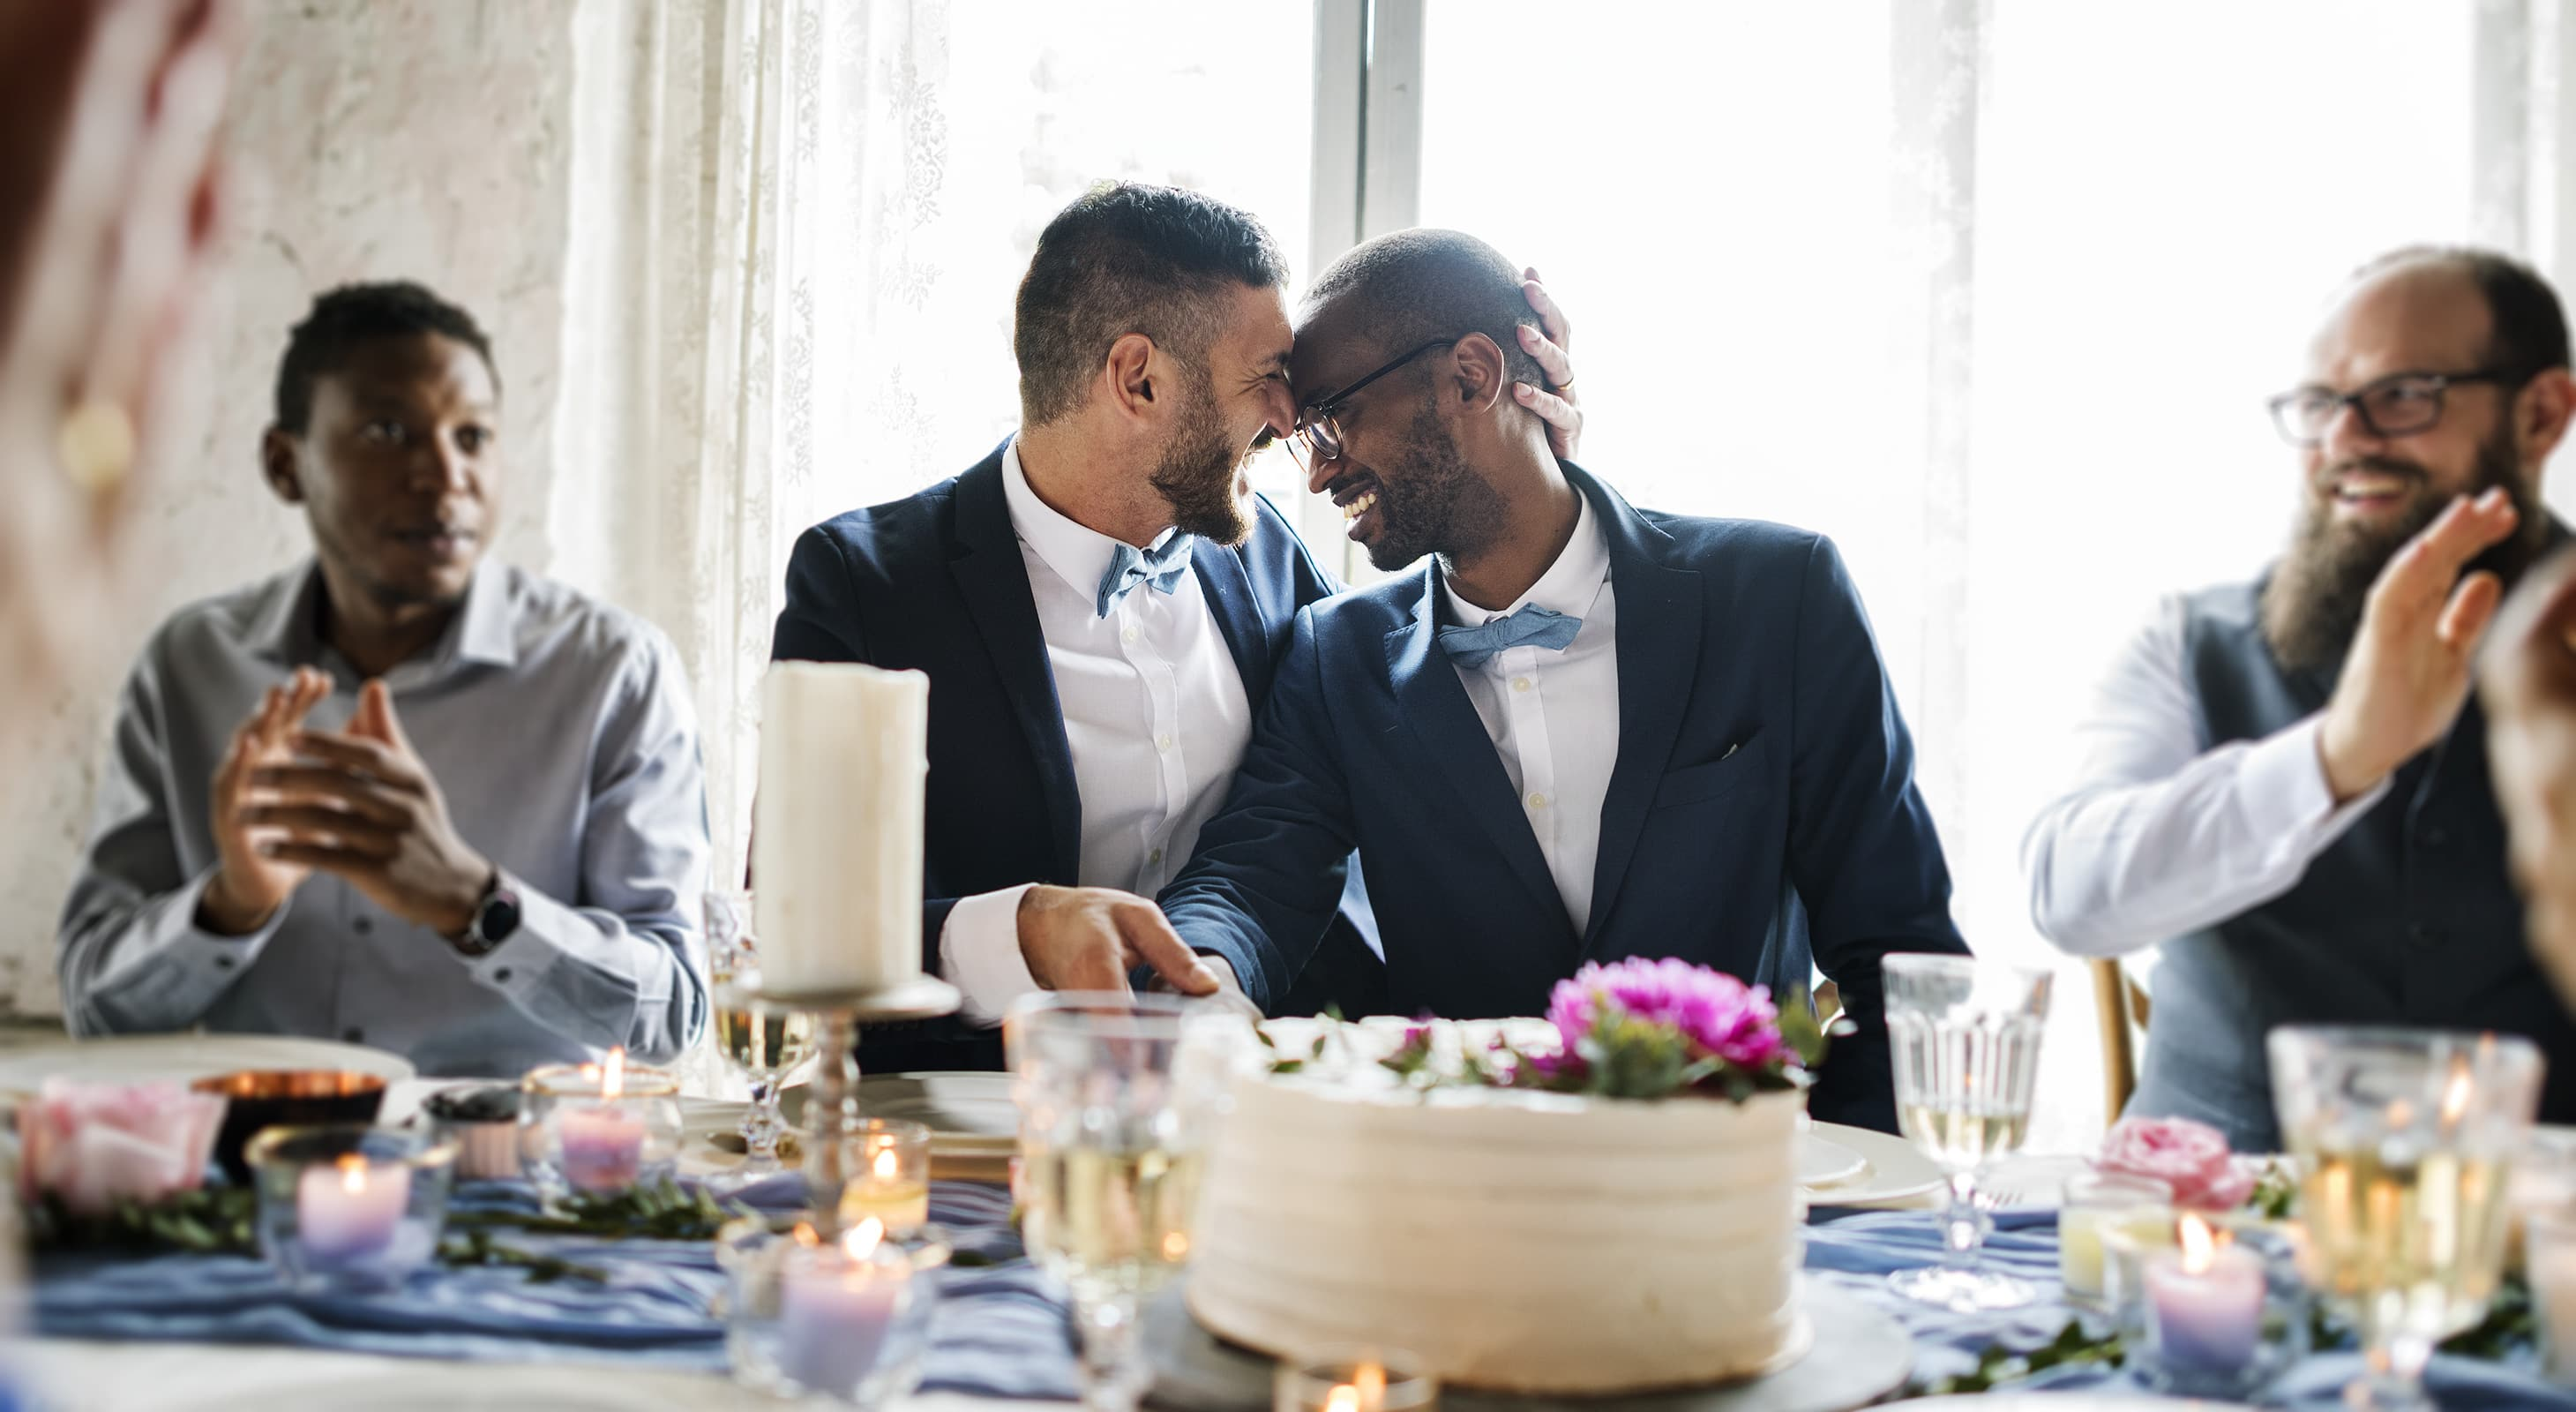 A gay couple embracing and laughing at a dinner reception